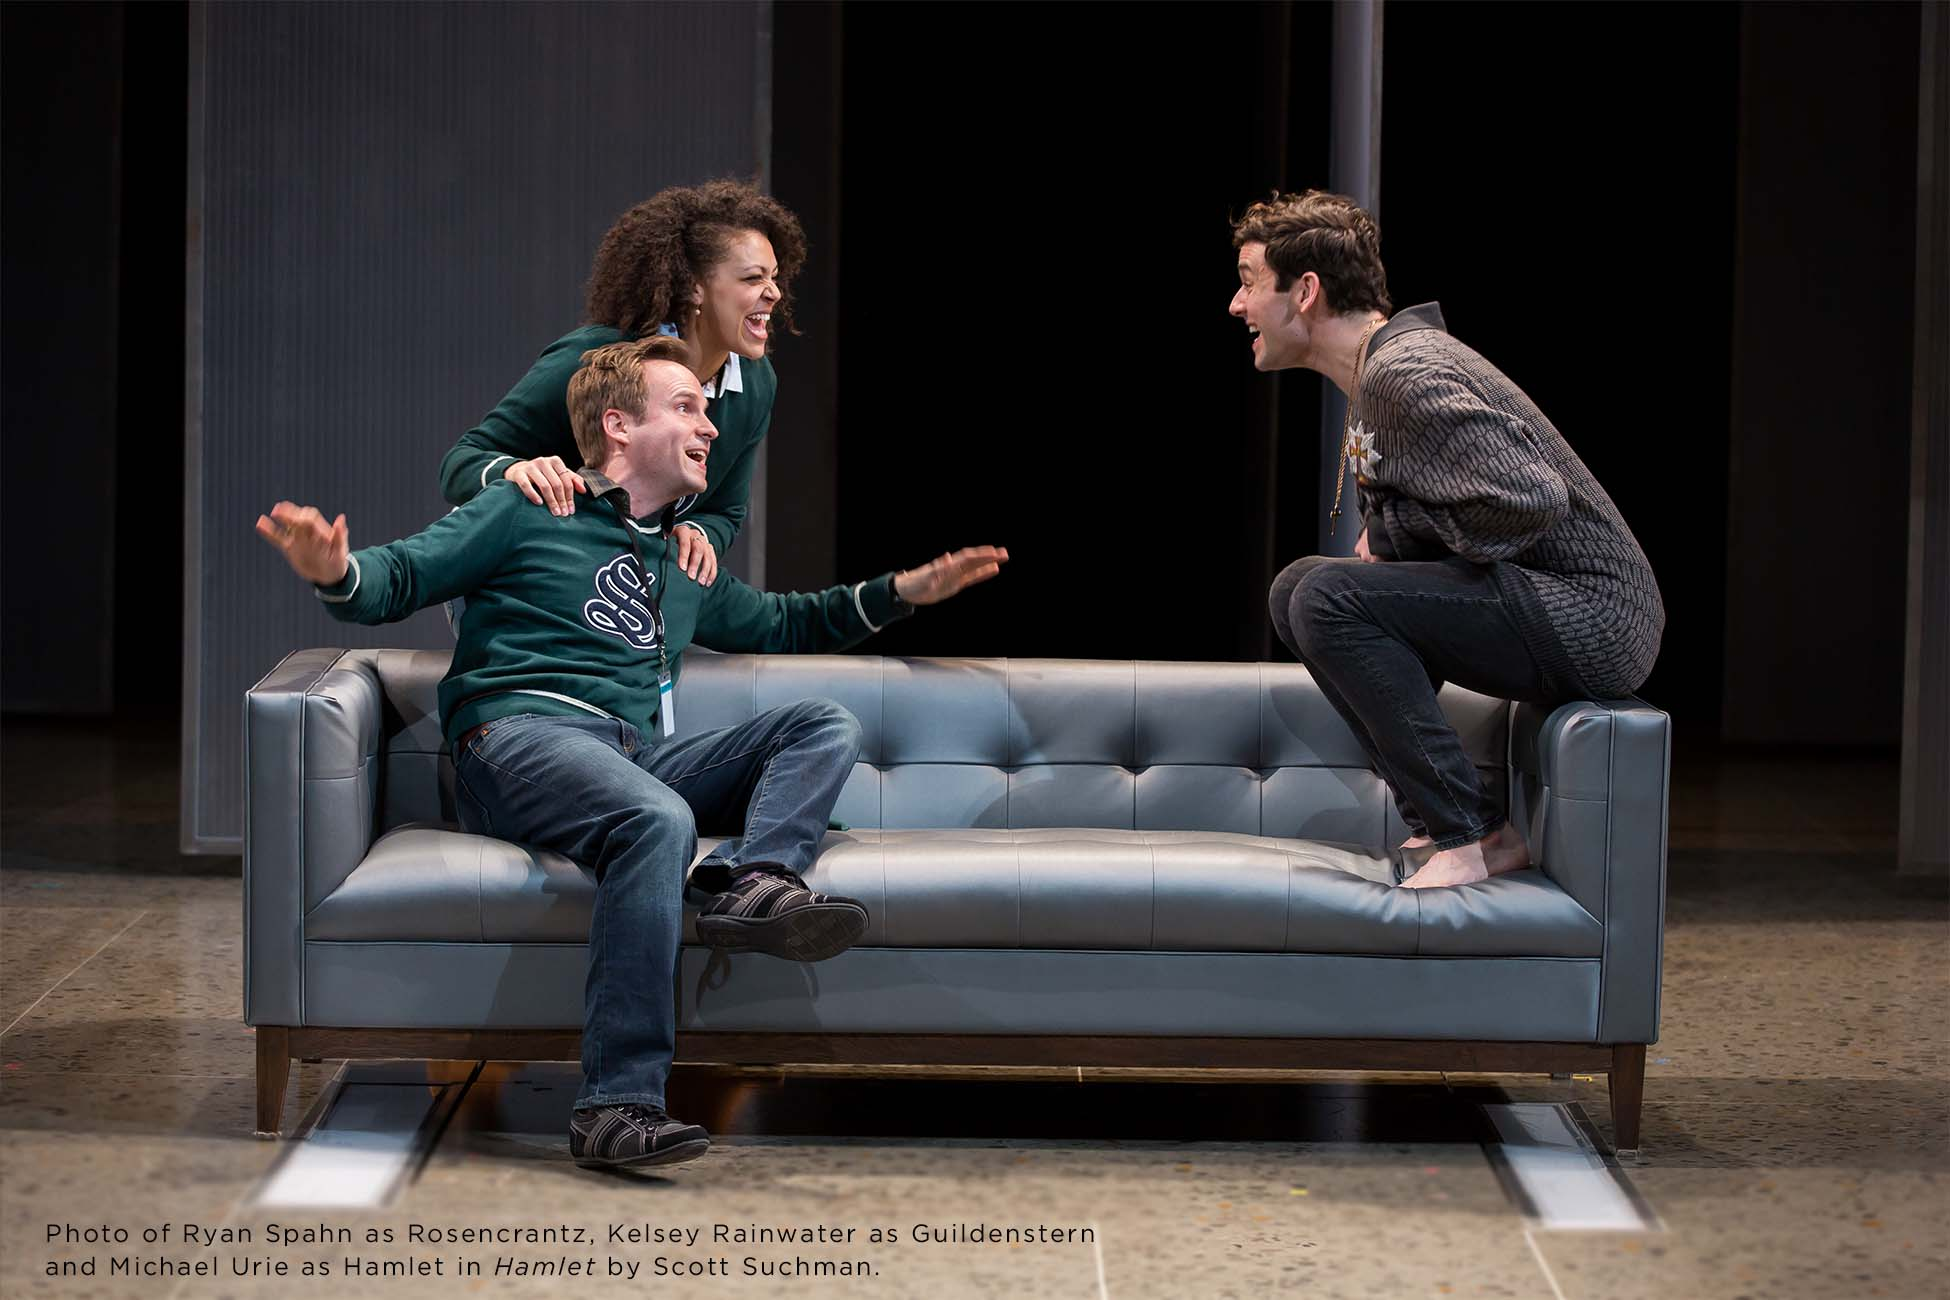 Photo of Ryan Spahn, Kelsey Rainwater and Michael Urie by Scott Suchman.